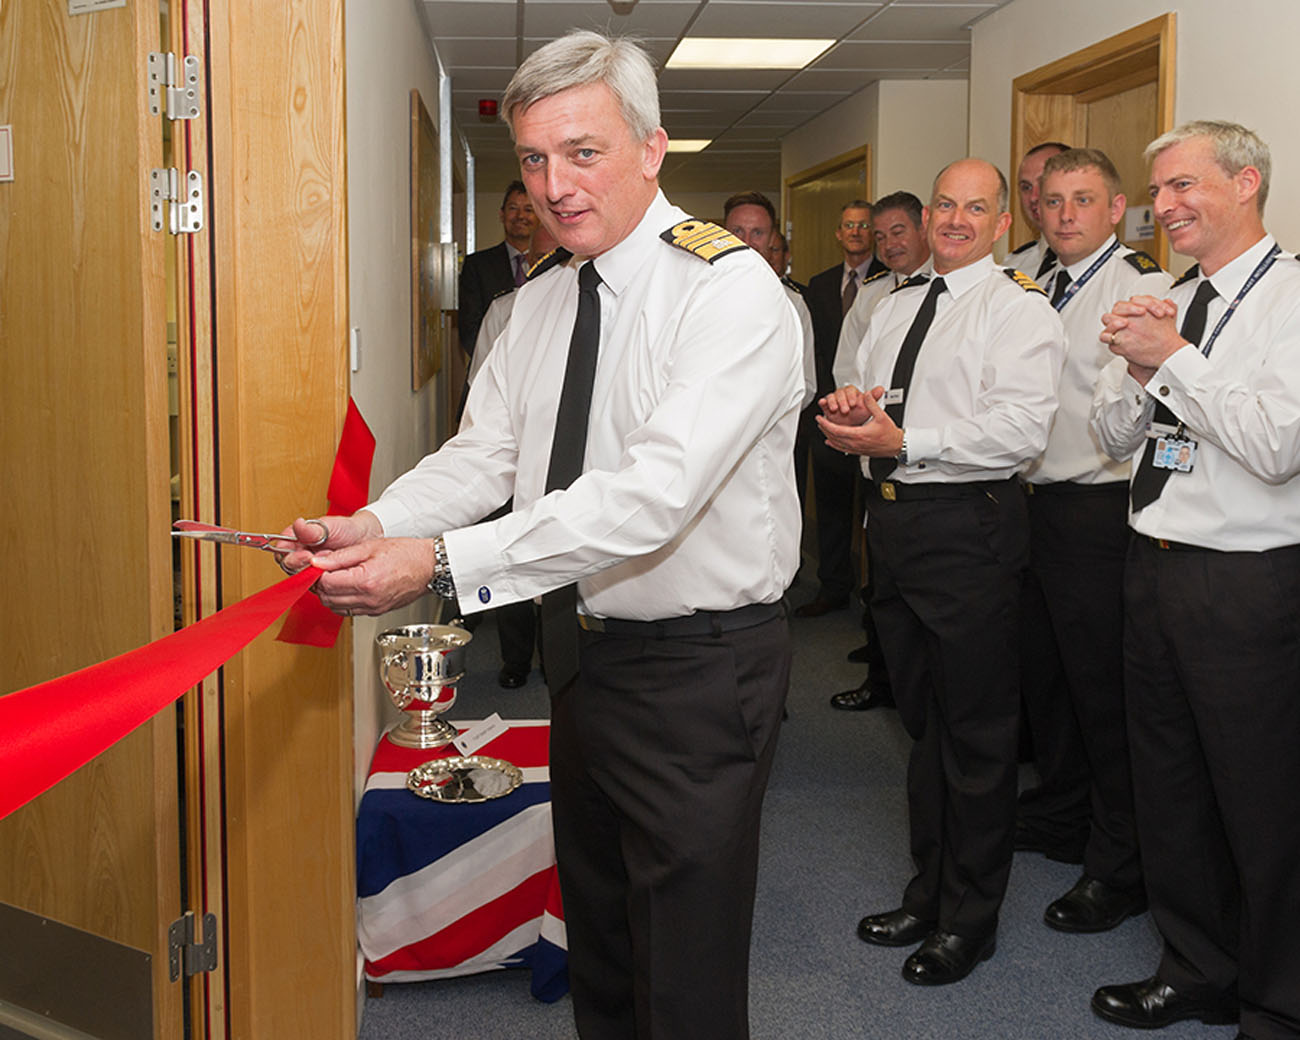 First sea lord opens new training equipment area